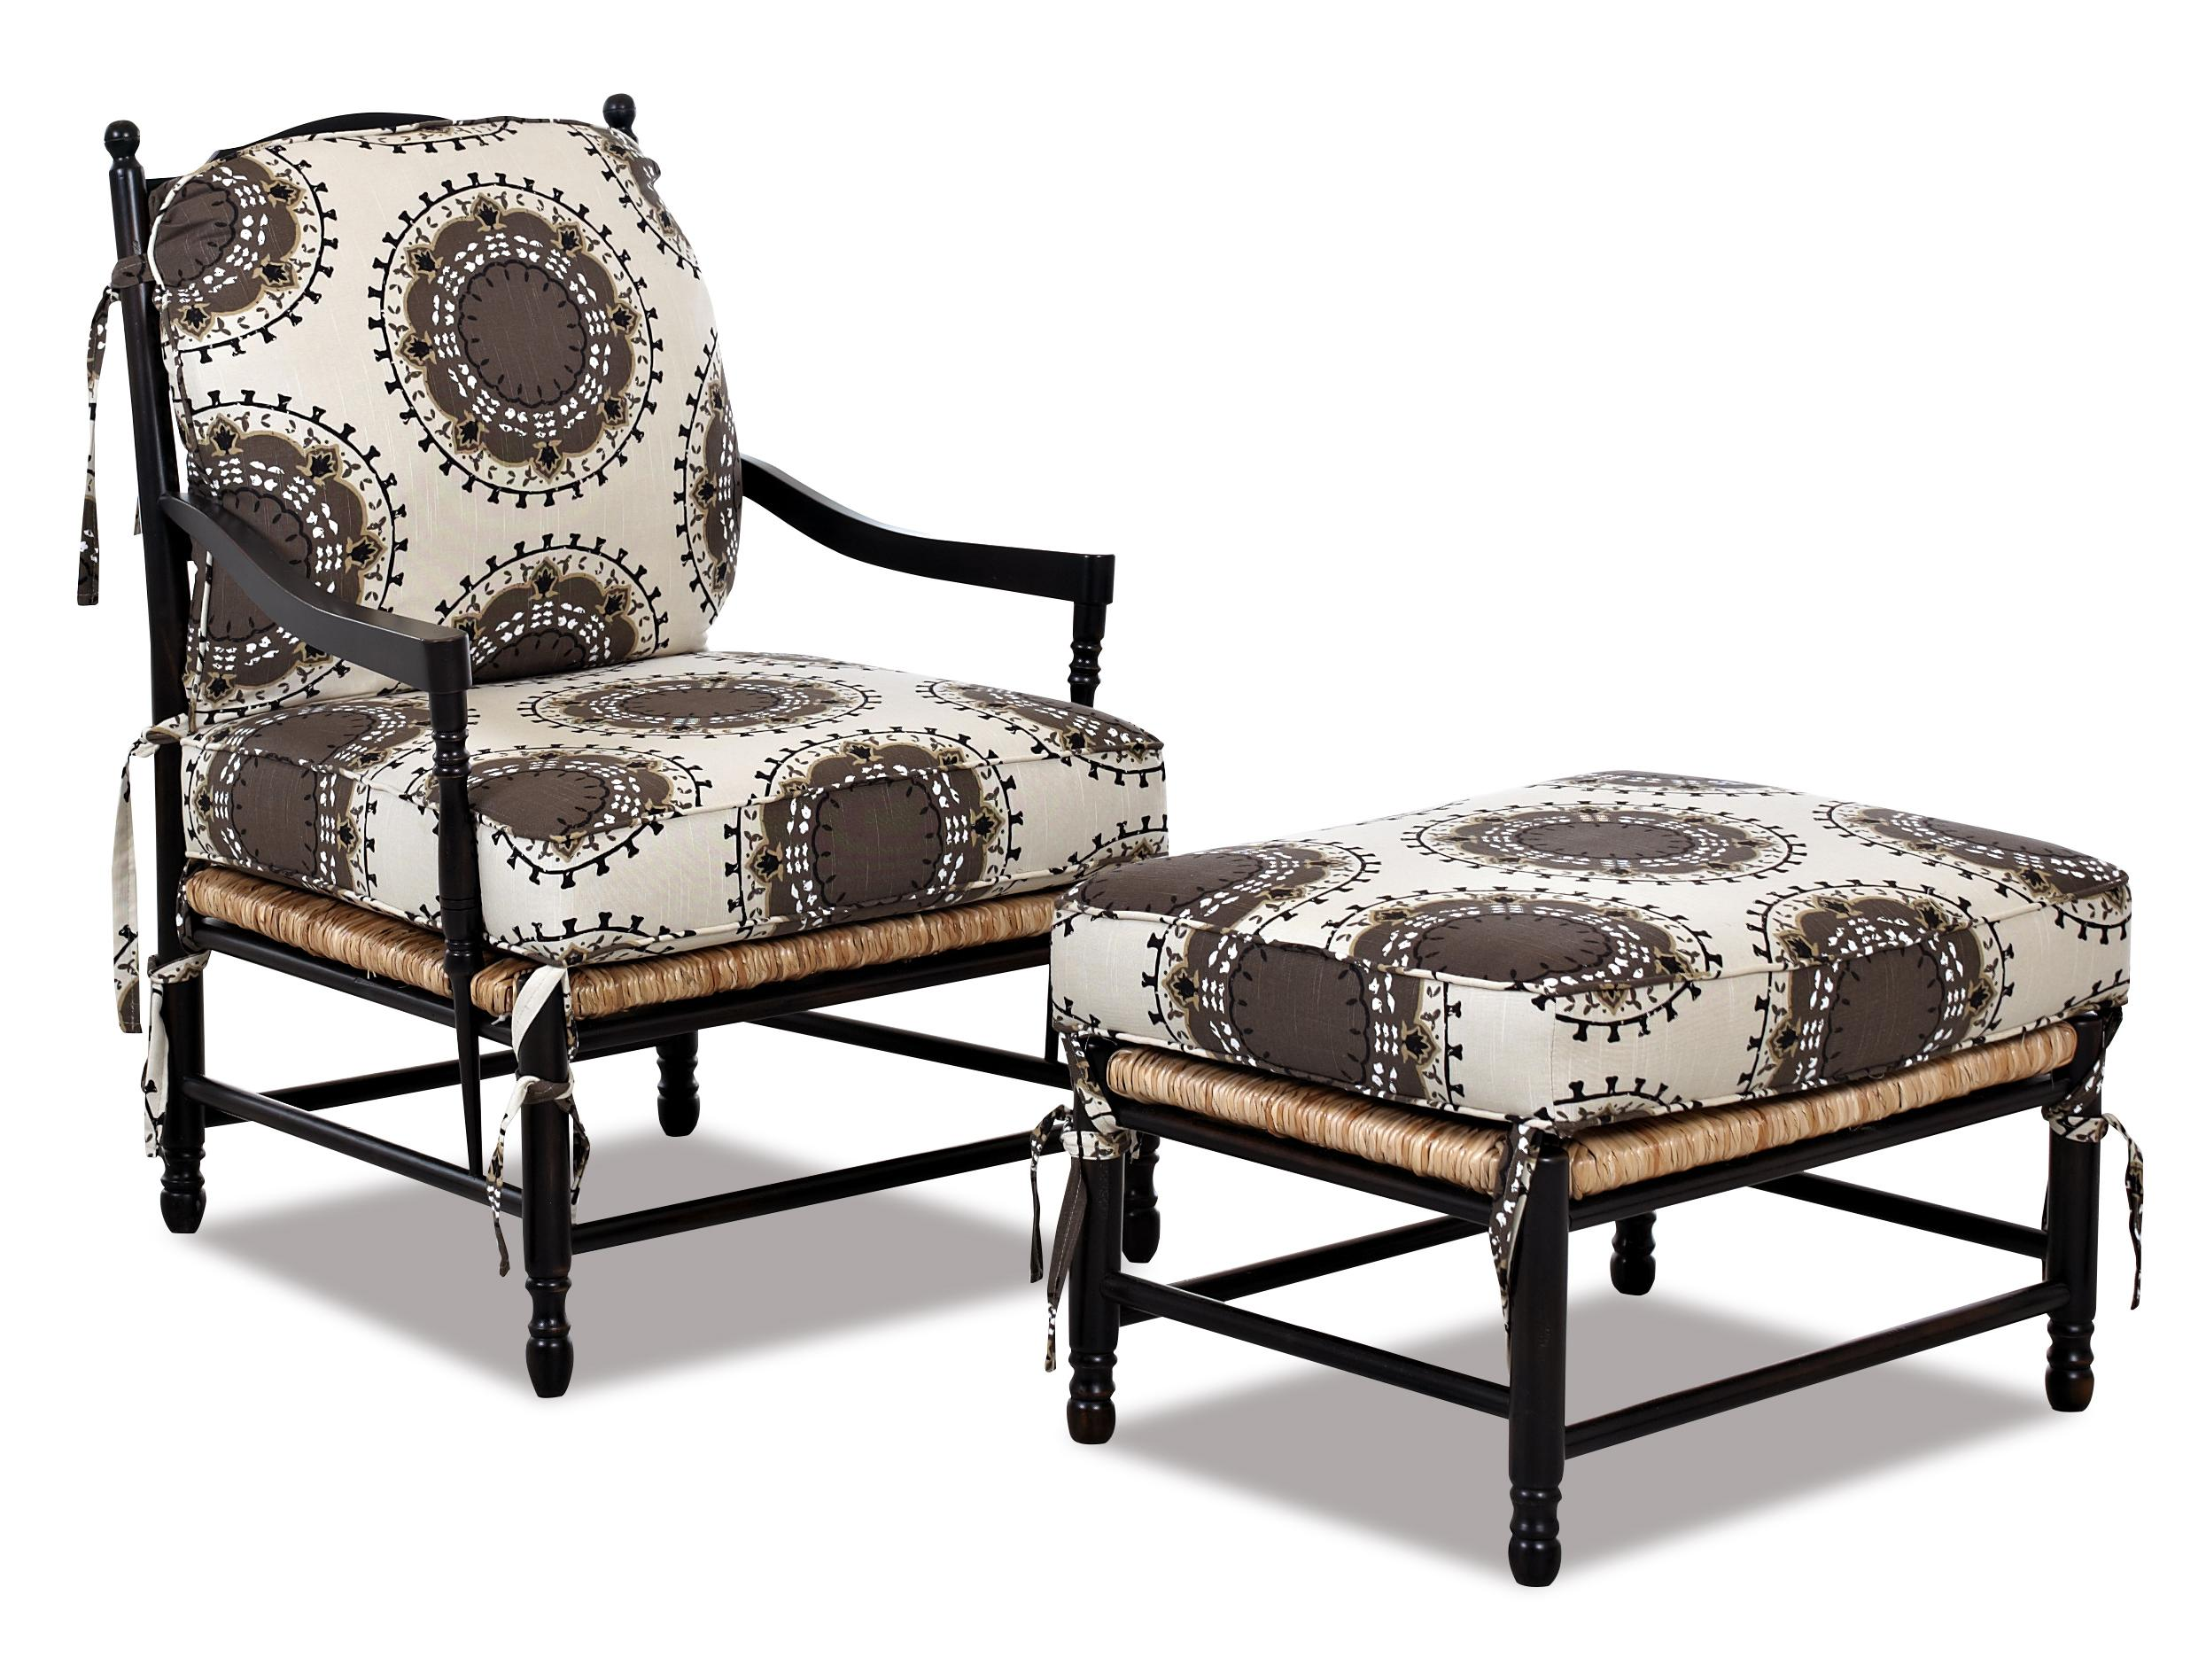 Klaussner Chairs and Accents Verano Occasional Chair and Ottoman Set - Item Number: K300 OC+OTTO